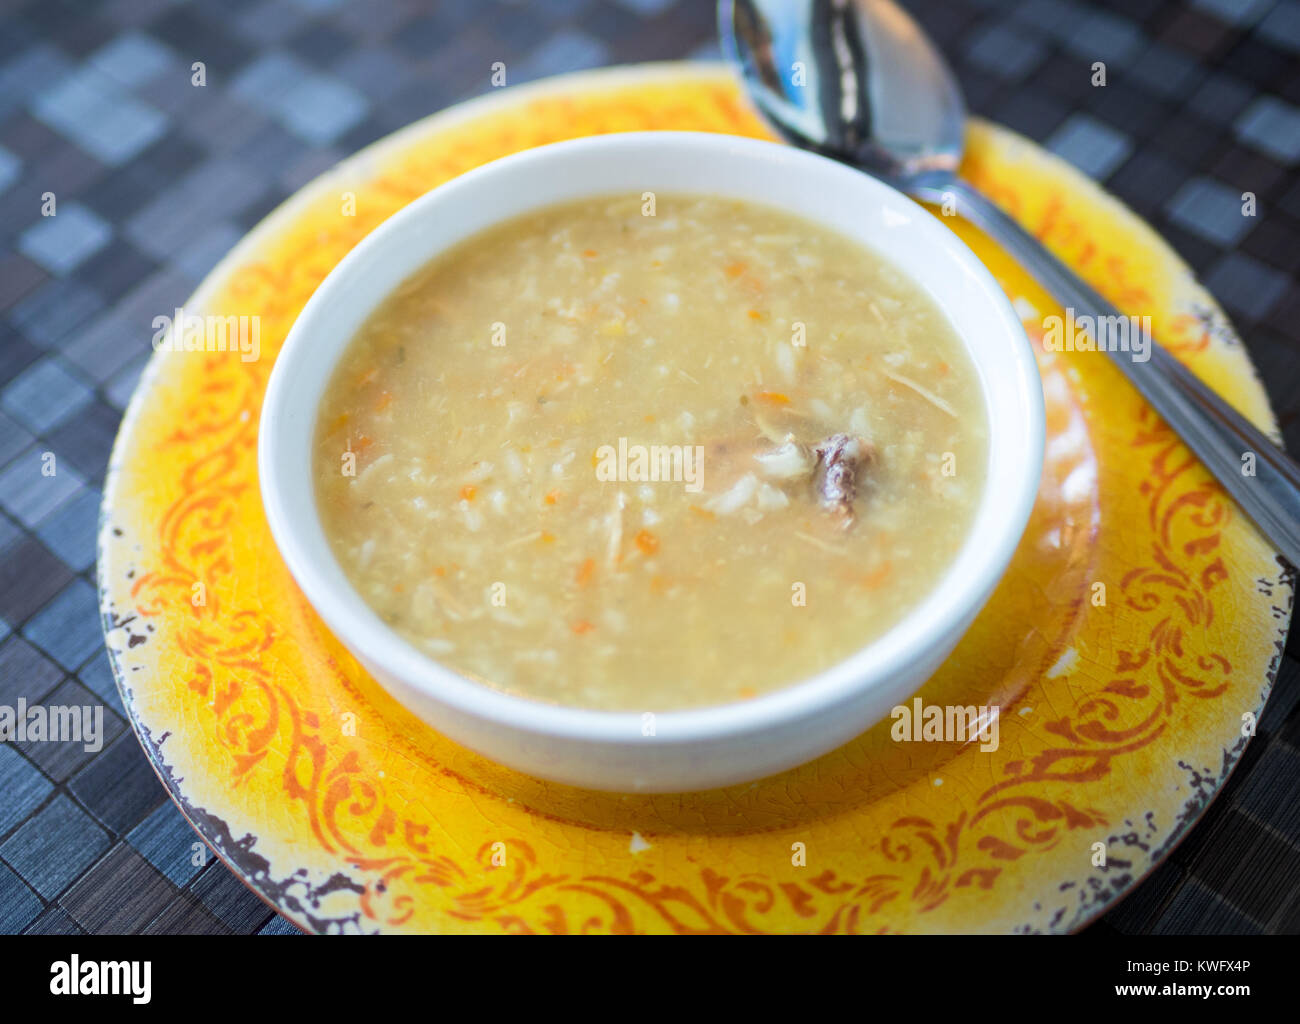 A bowl of homemade turkey soup (homemade chicken soup) from d'Lish by Tish Cafe in Saskatoon, Saskatchewan, - Stock Image